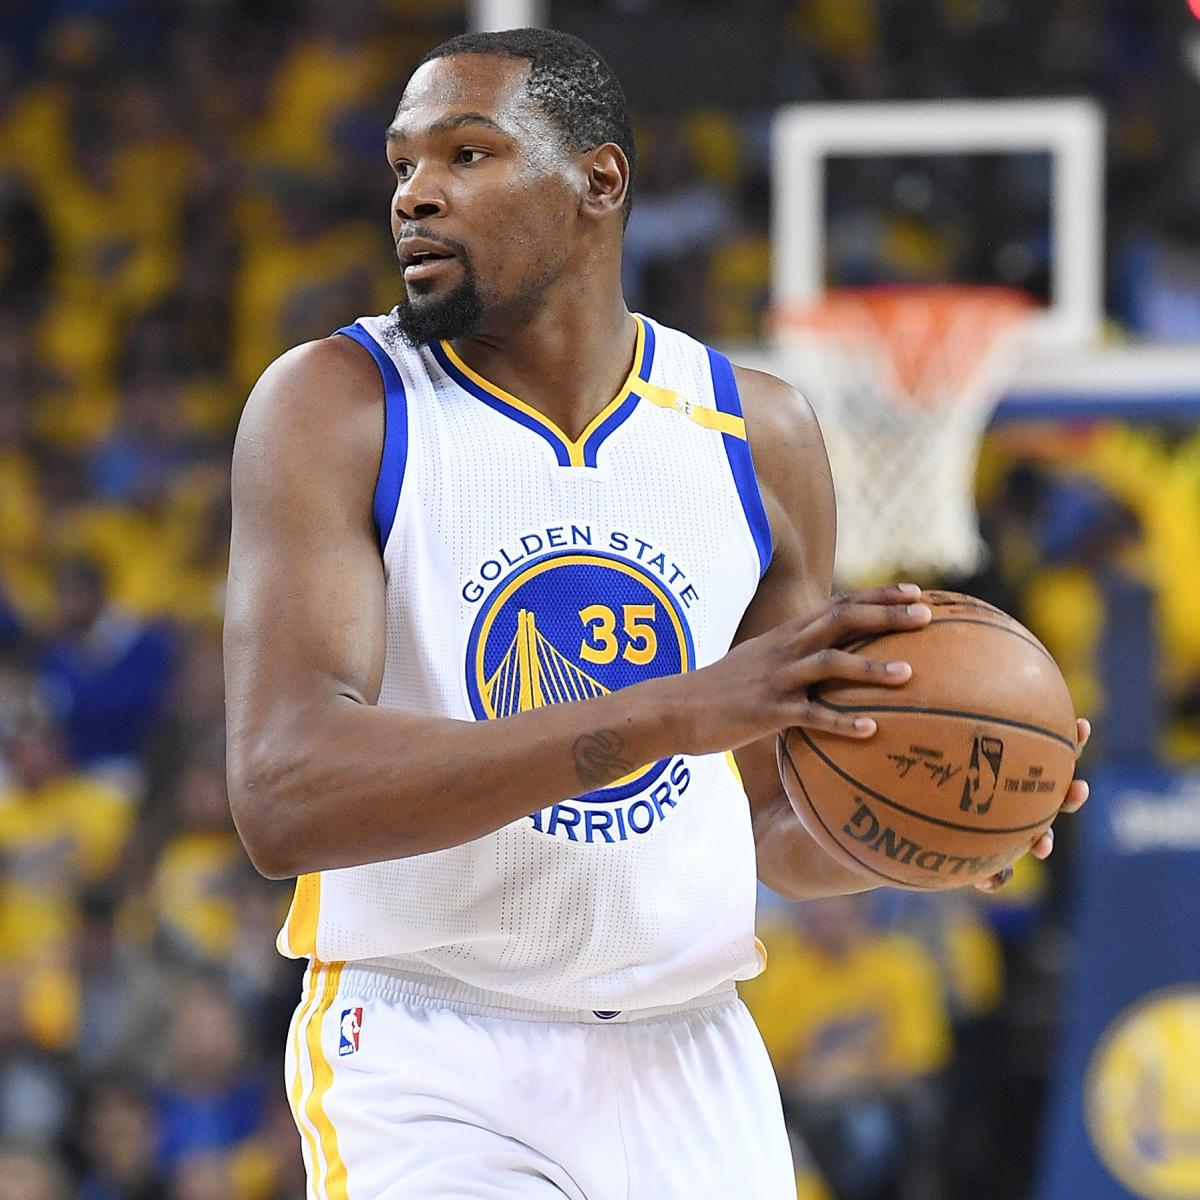 Blazers Injury Report: Kevin Durant Active For Game 4 Of Warriors Vs. Blazers